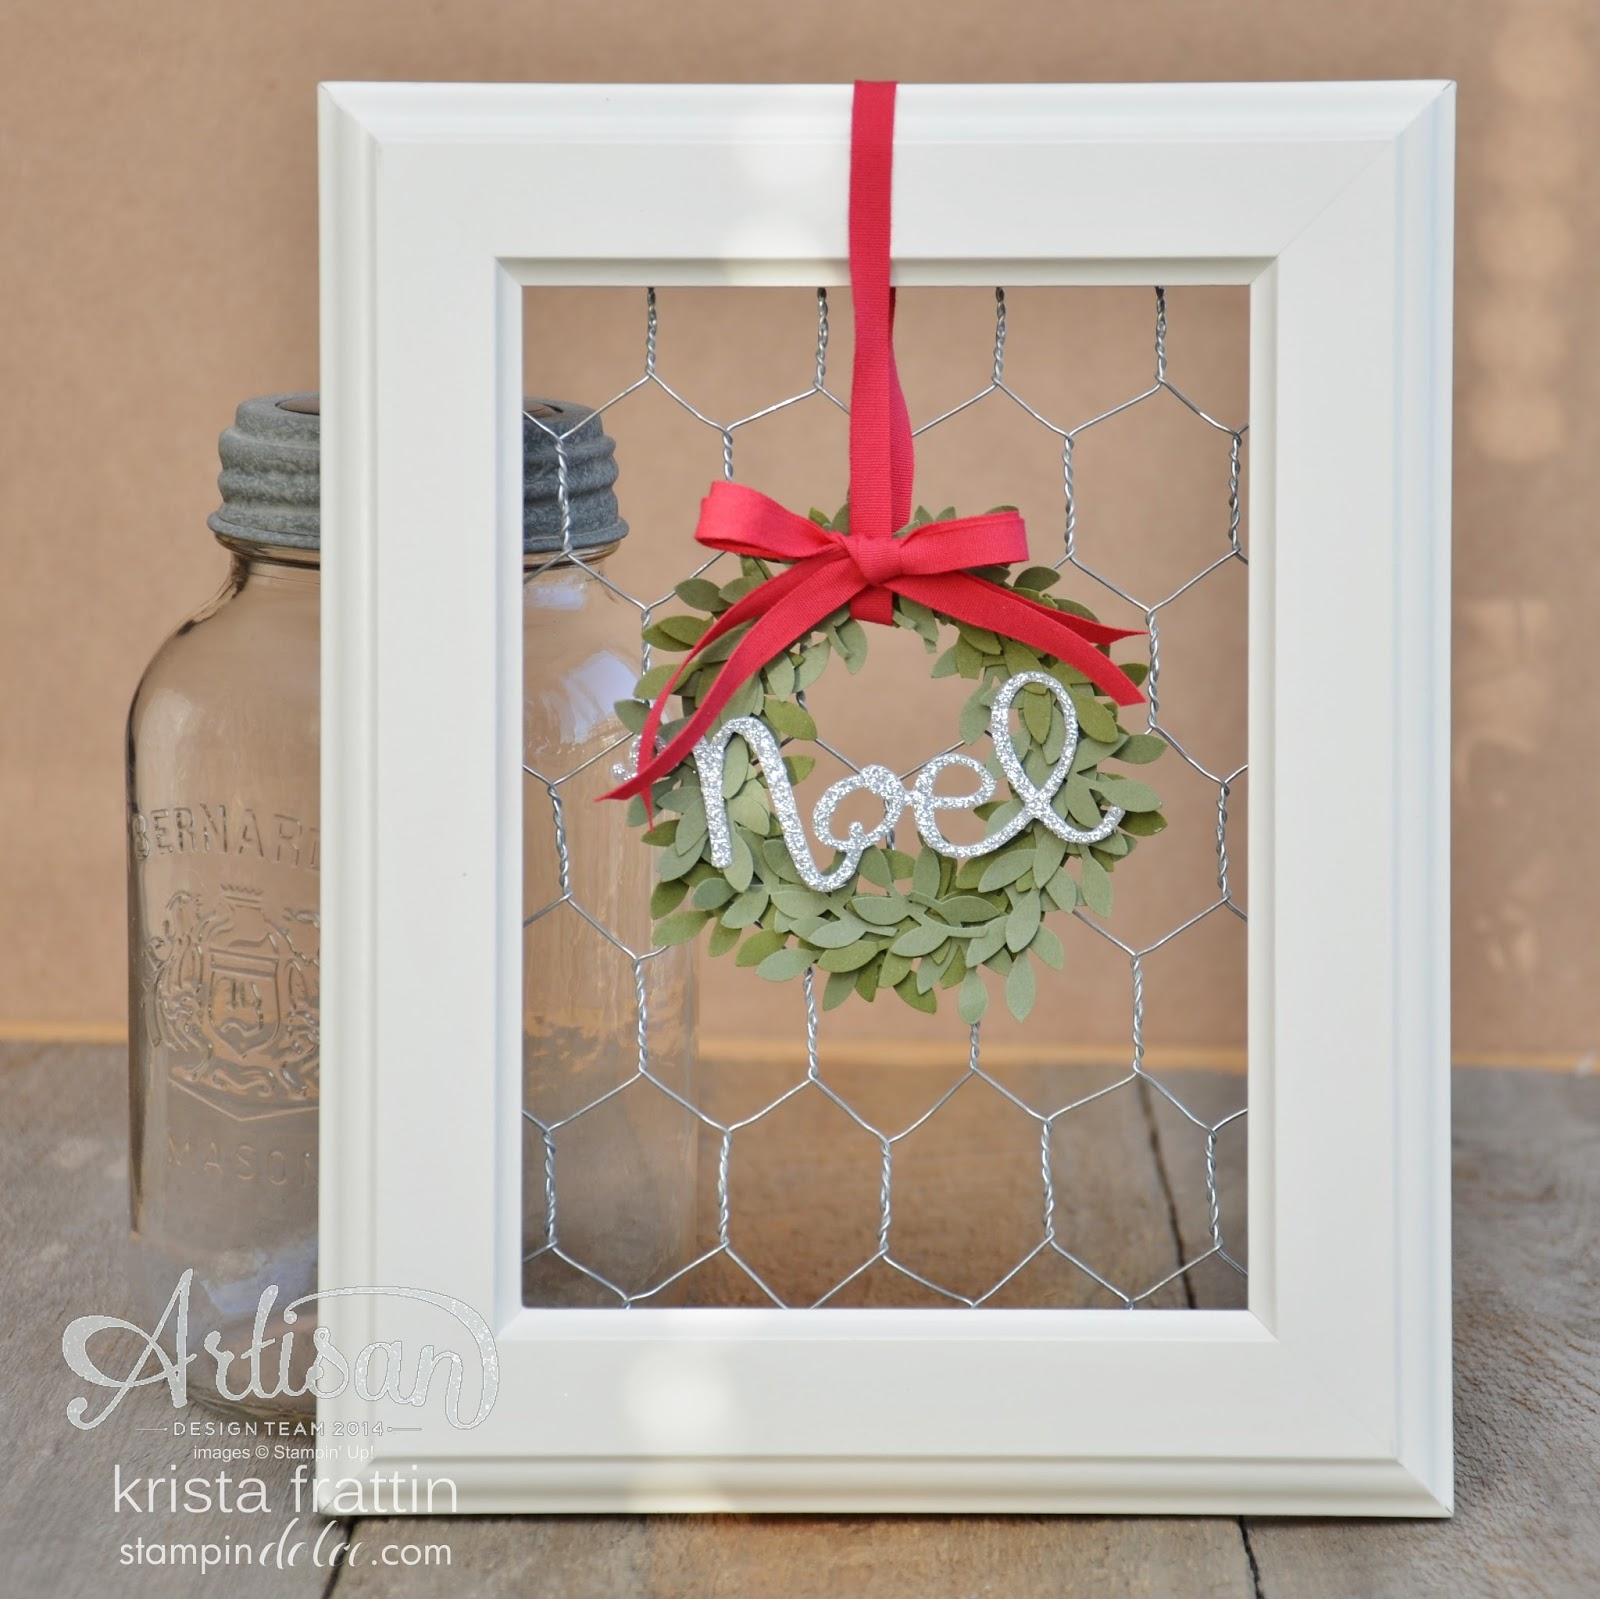 12 days of christmas day 3 christmas decor tgifc30 - Christmas Decorations With Chicken Wire